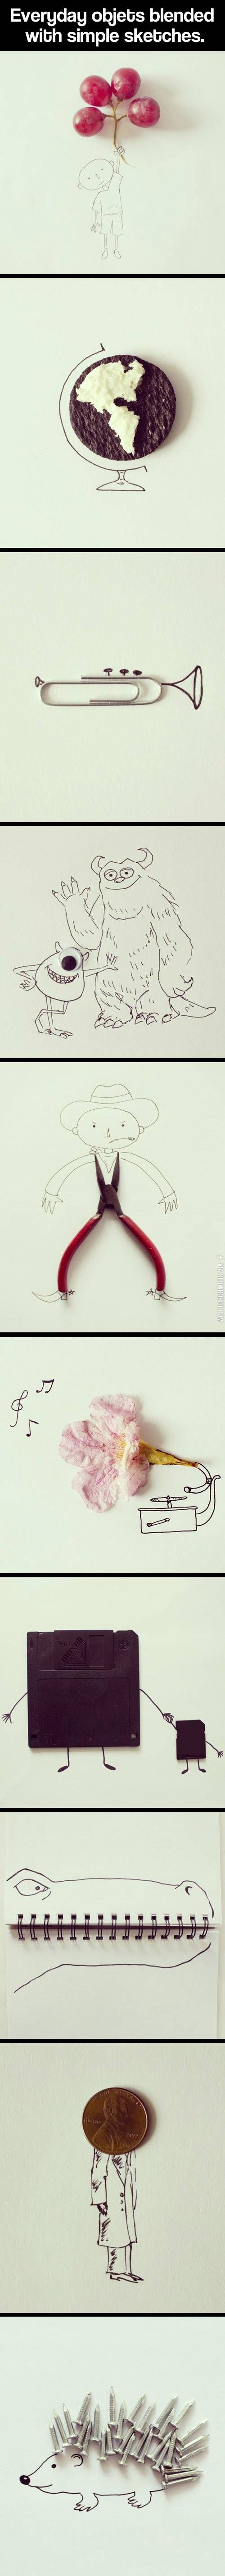 Love this! Incorporating everyday objects into simple sketches.